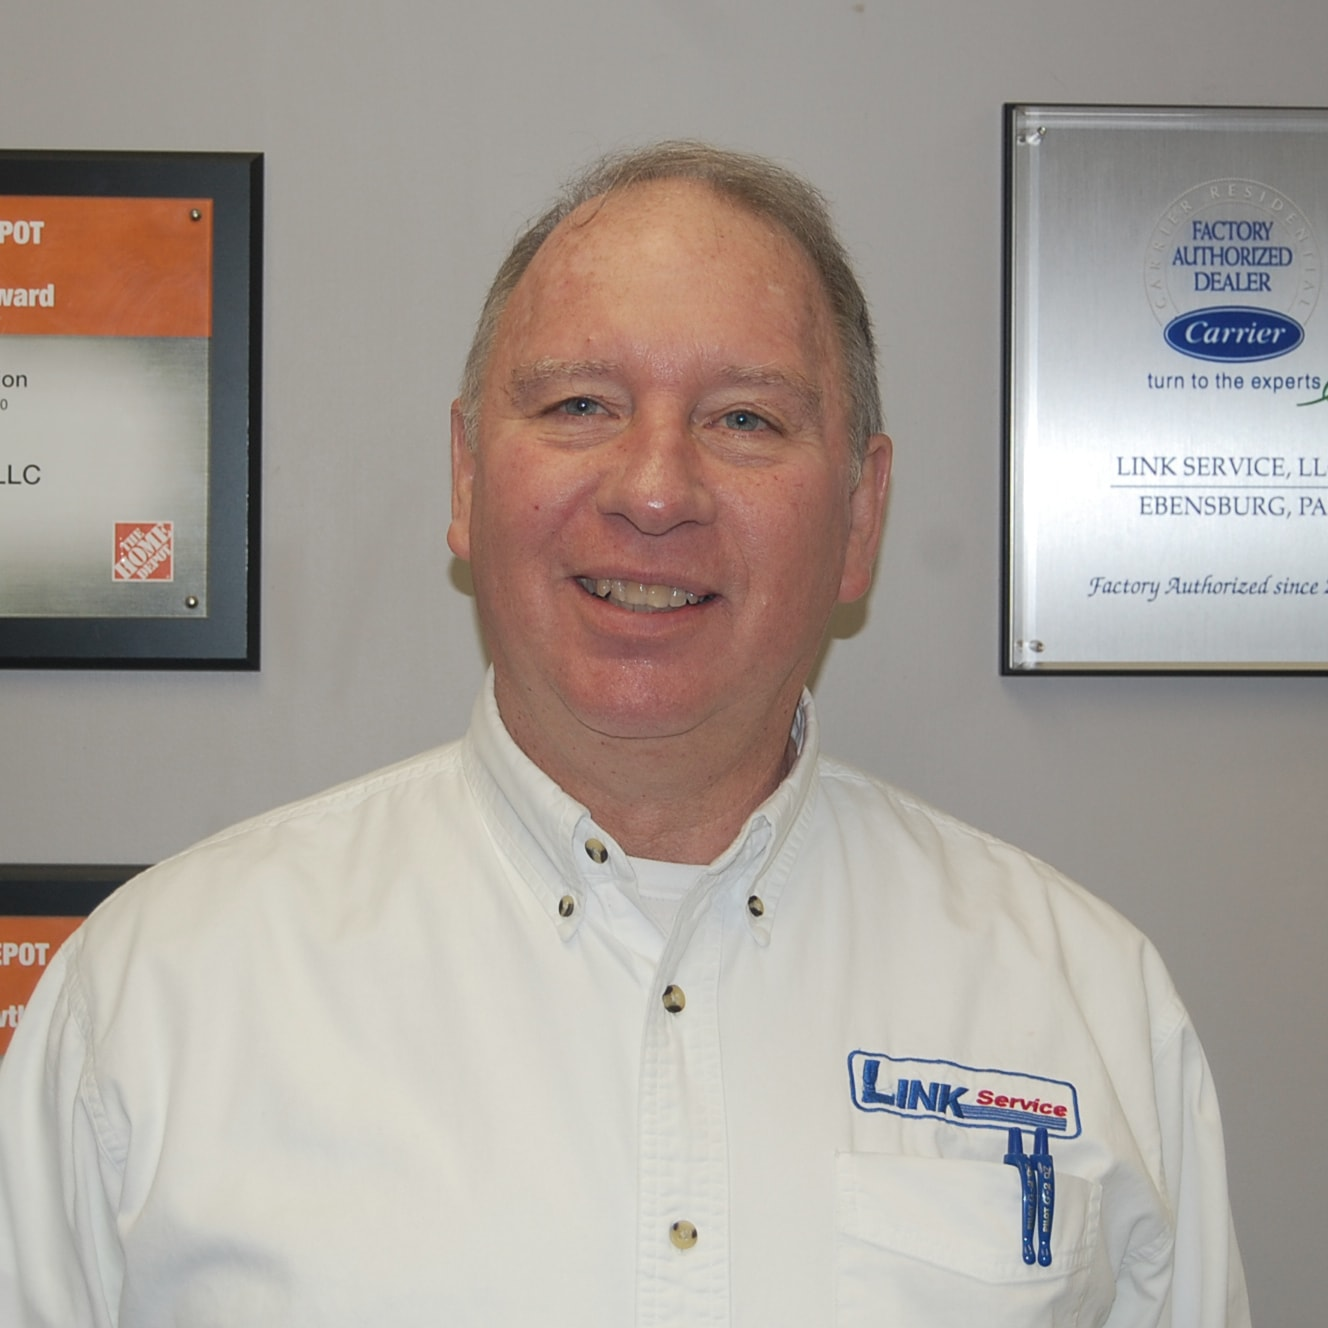 Jeff L. of Link Service Heating & Cooling.